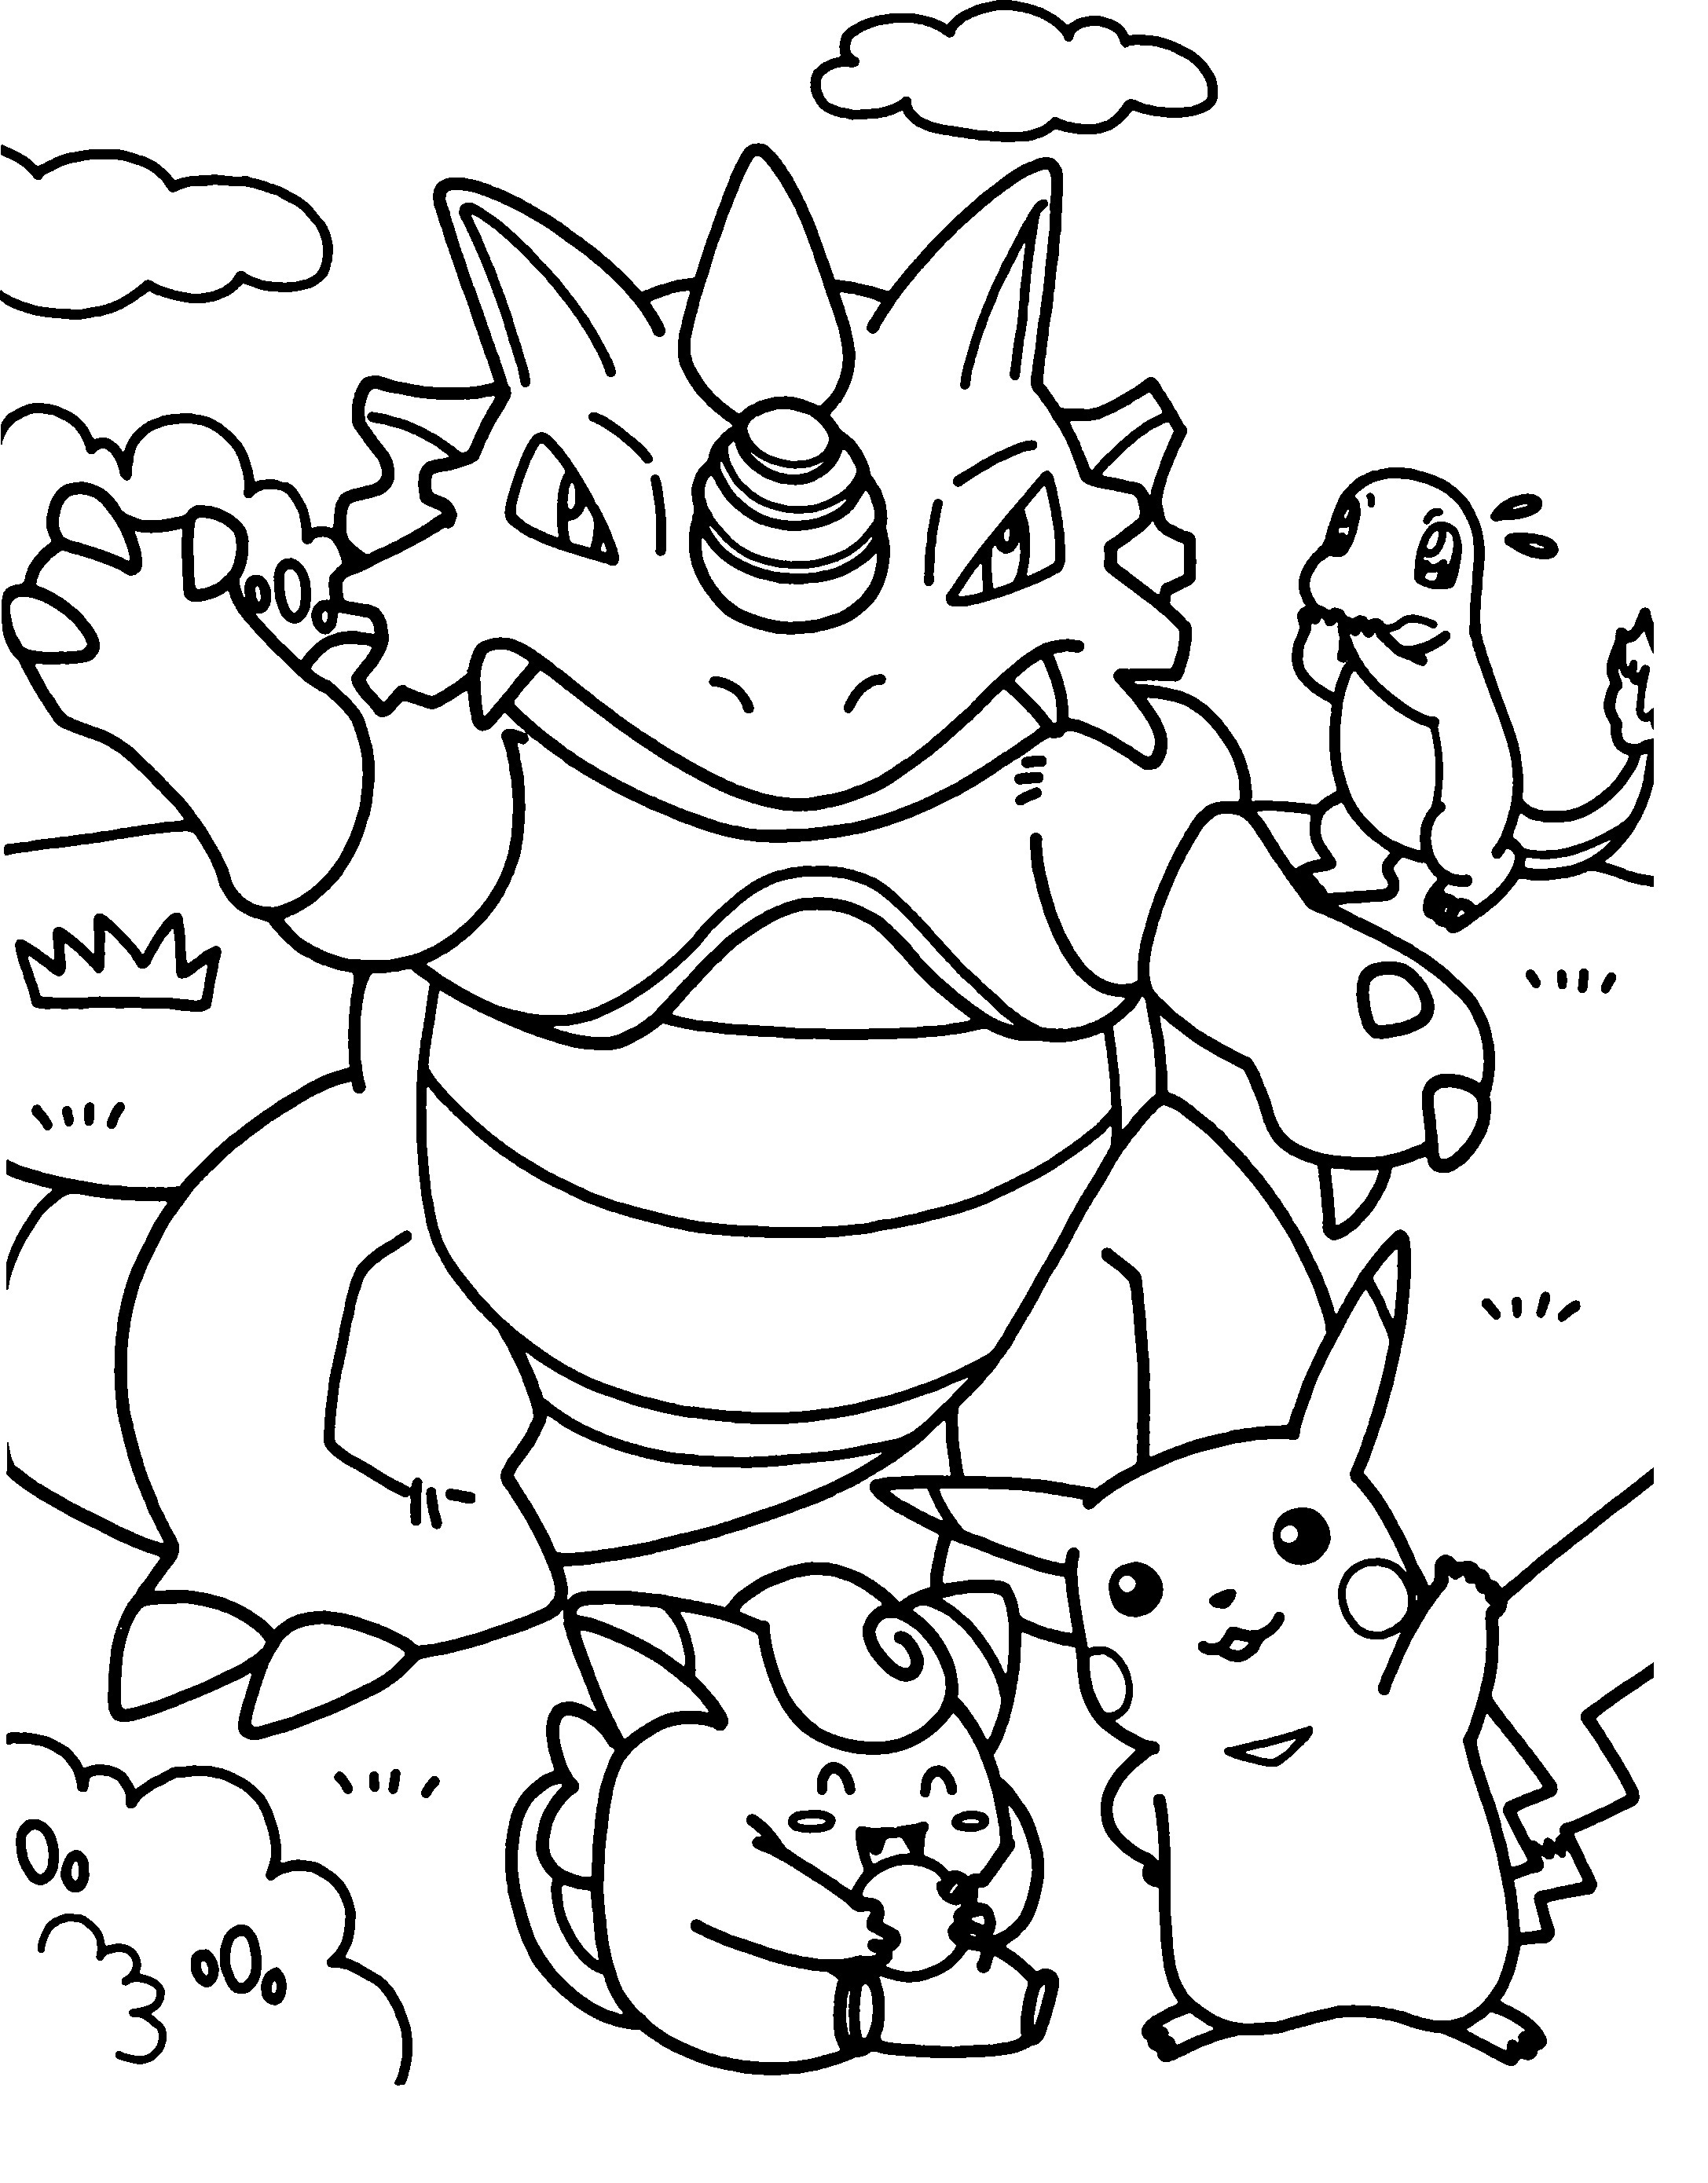 Pokemon Coloring Pages for Kids Printable | ColoringMe.com